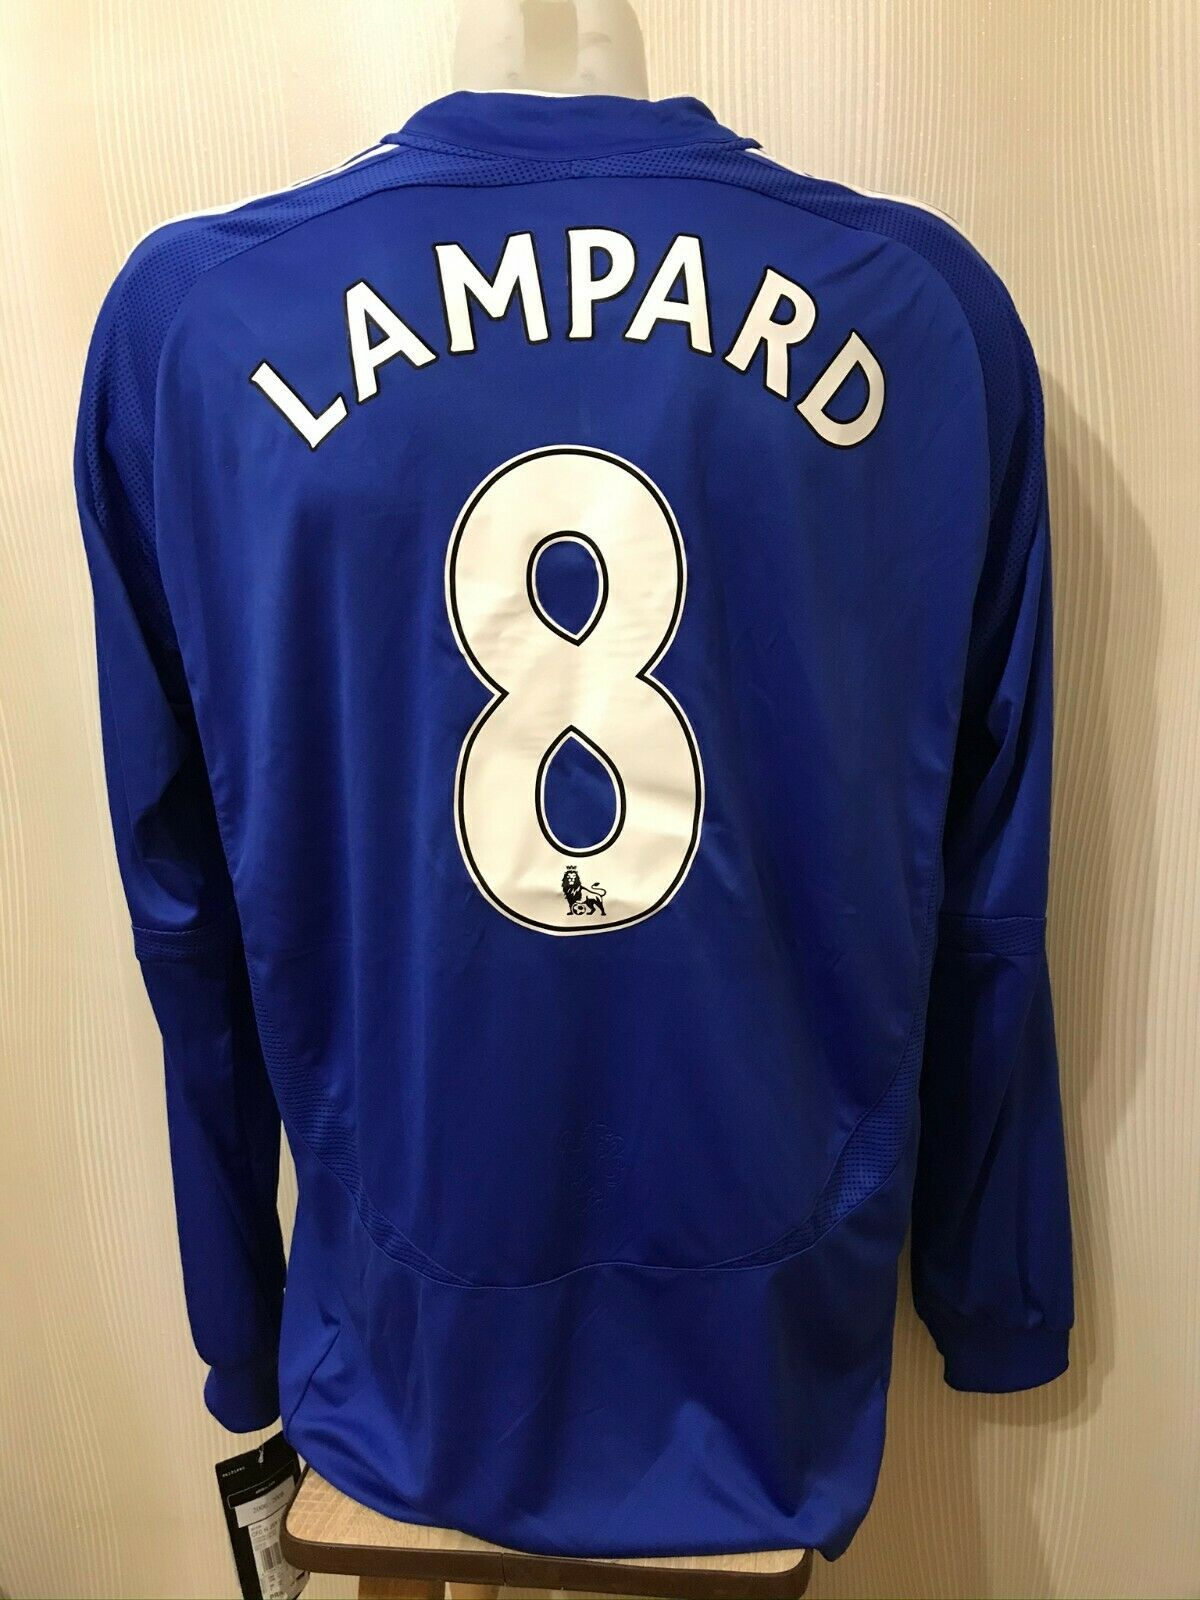 Chelsea London #8 Lampard 2006/2007/2008 Home 2XL Adidas 061228 jersey